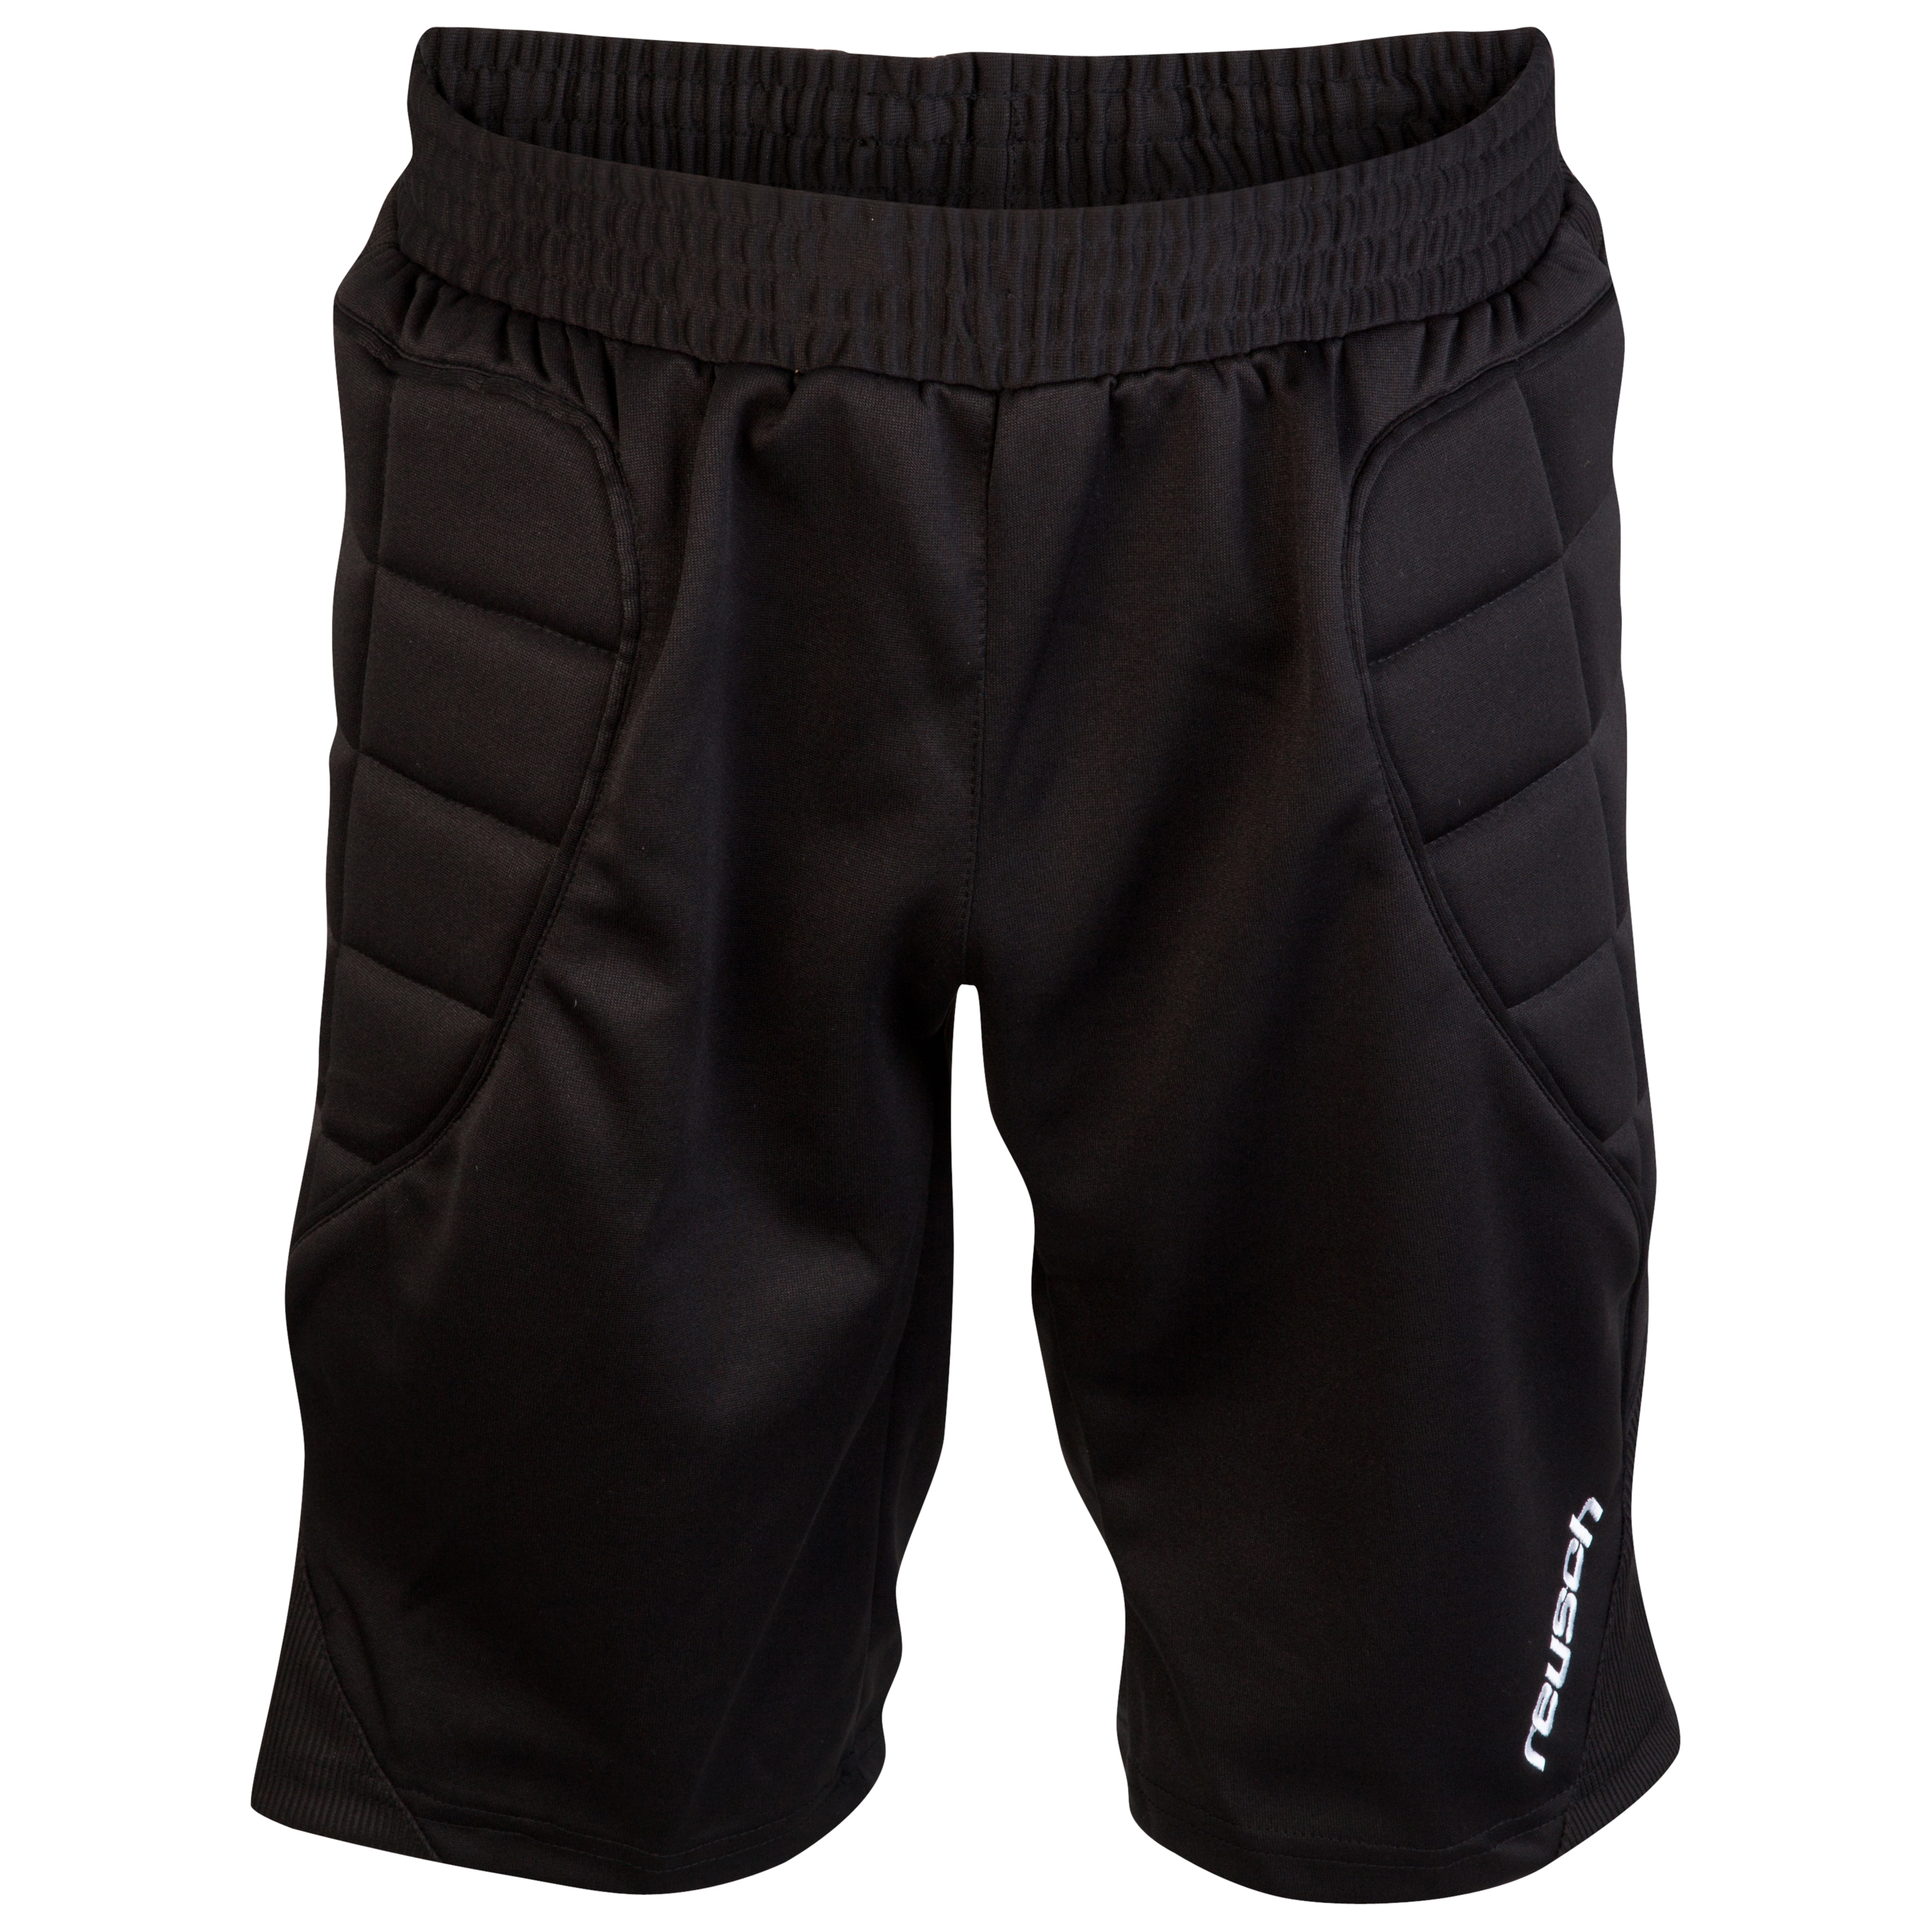 Reusch Goalkeeping Shorts-Black